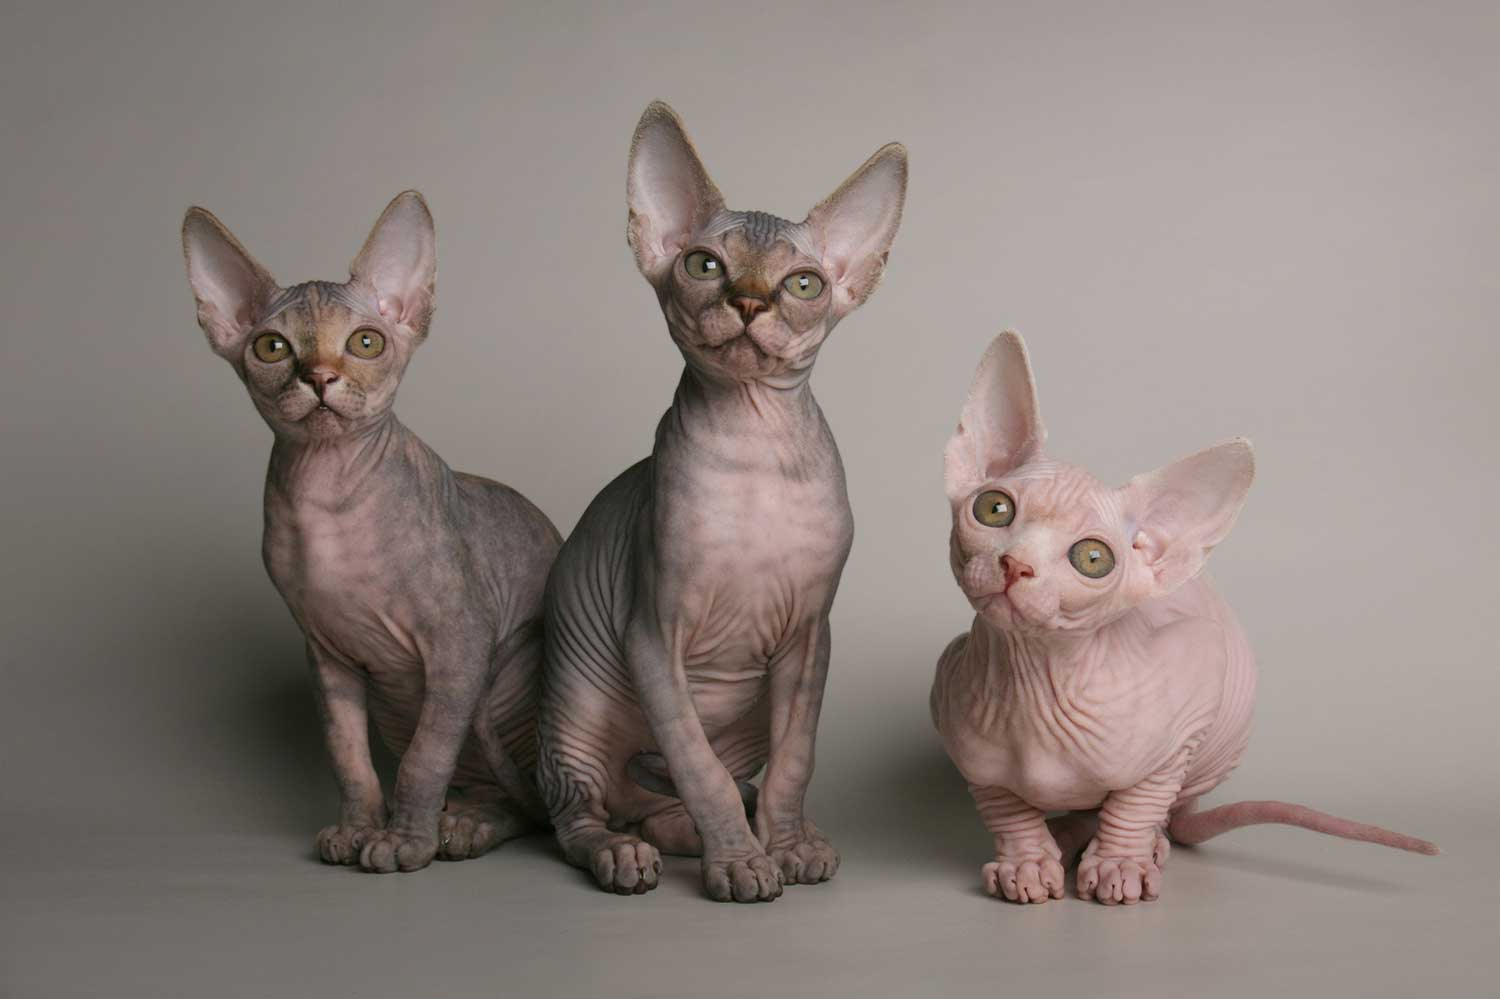 Sphynx cats were bred from a random genetic mutation